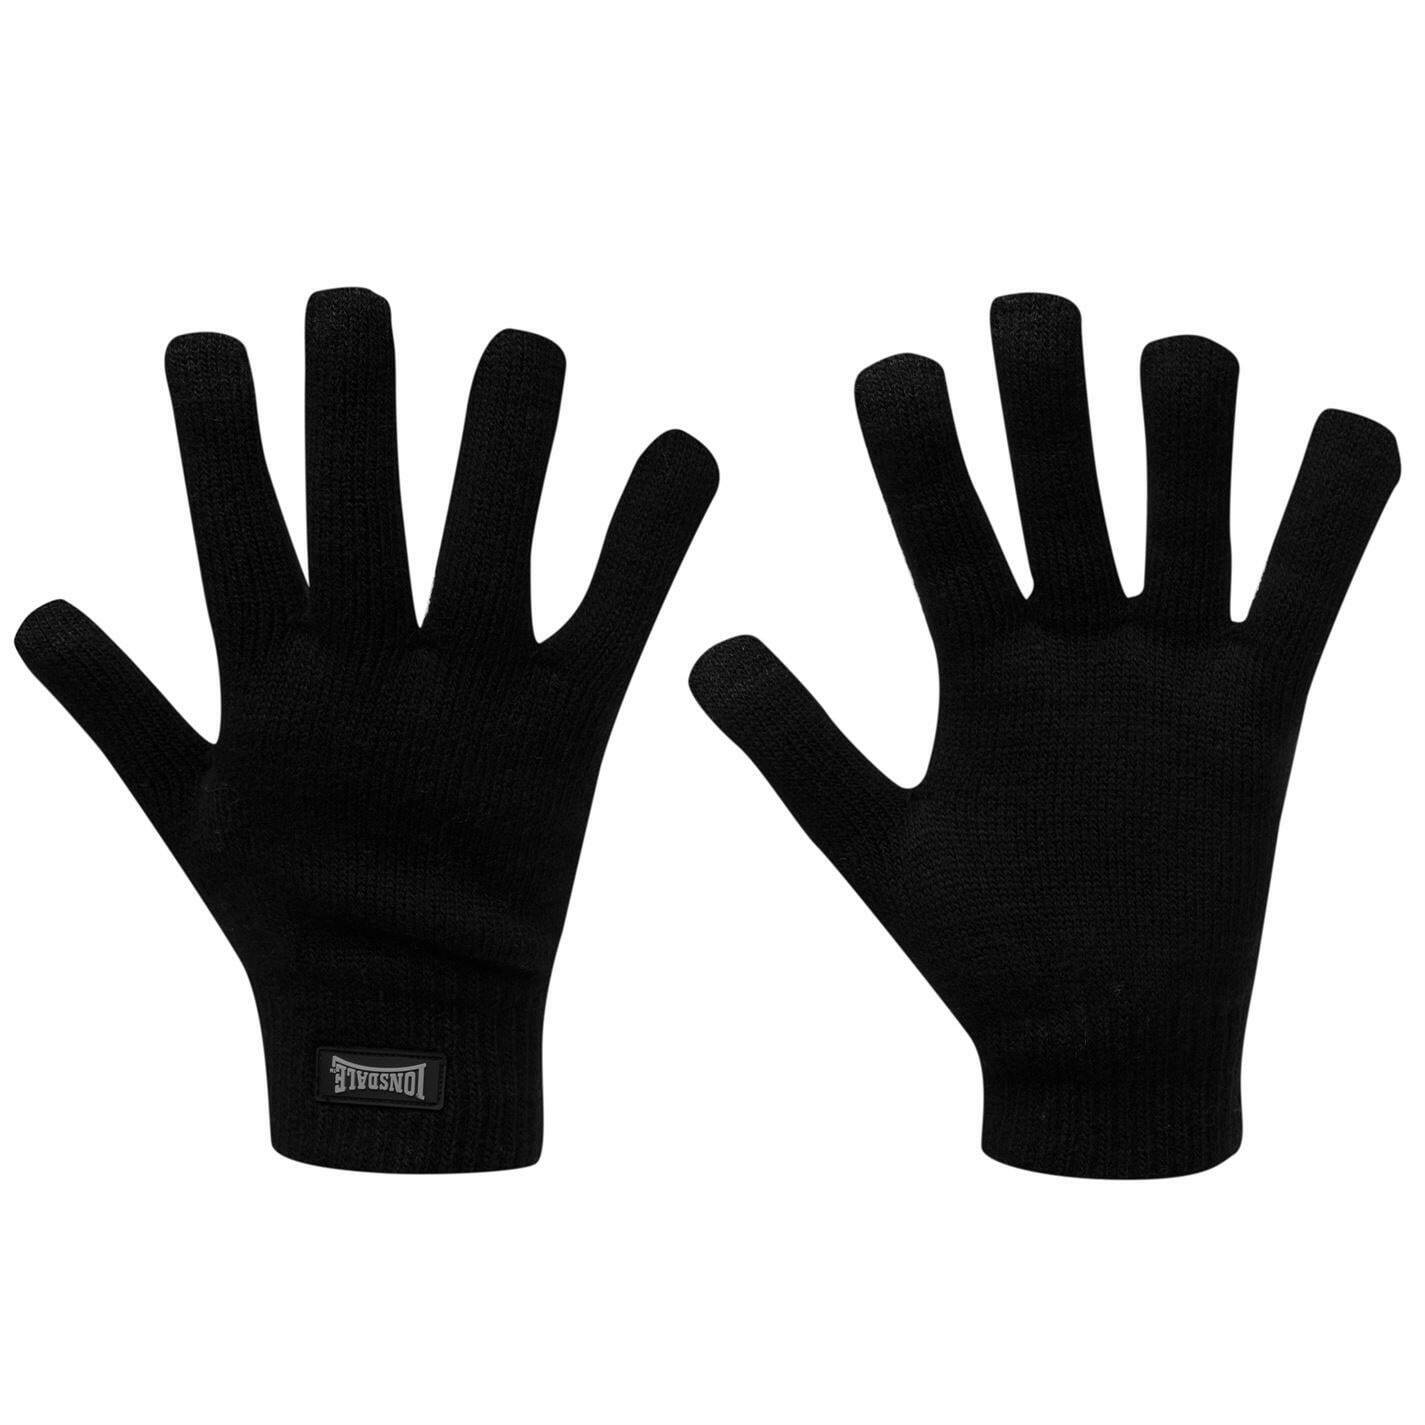 Lonsdale men ko winter knitted gloves mittens mitts sports running